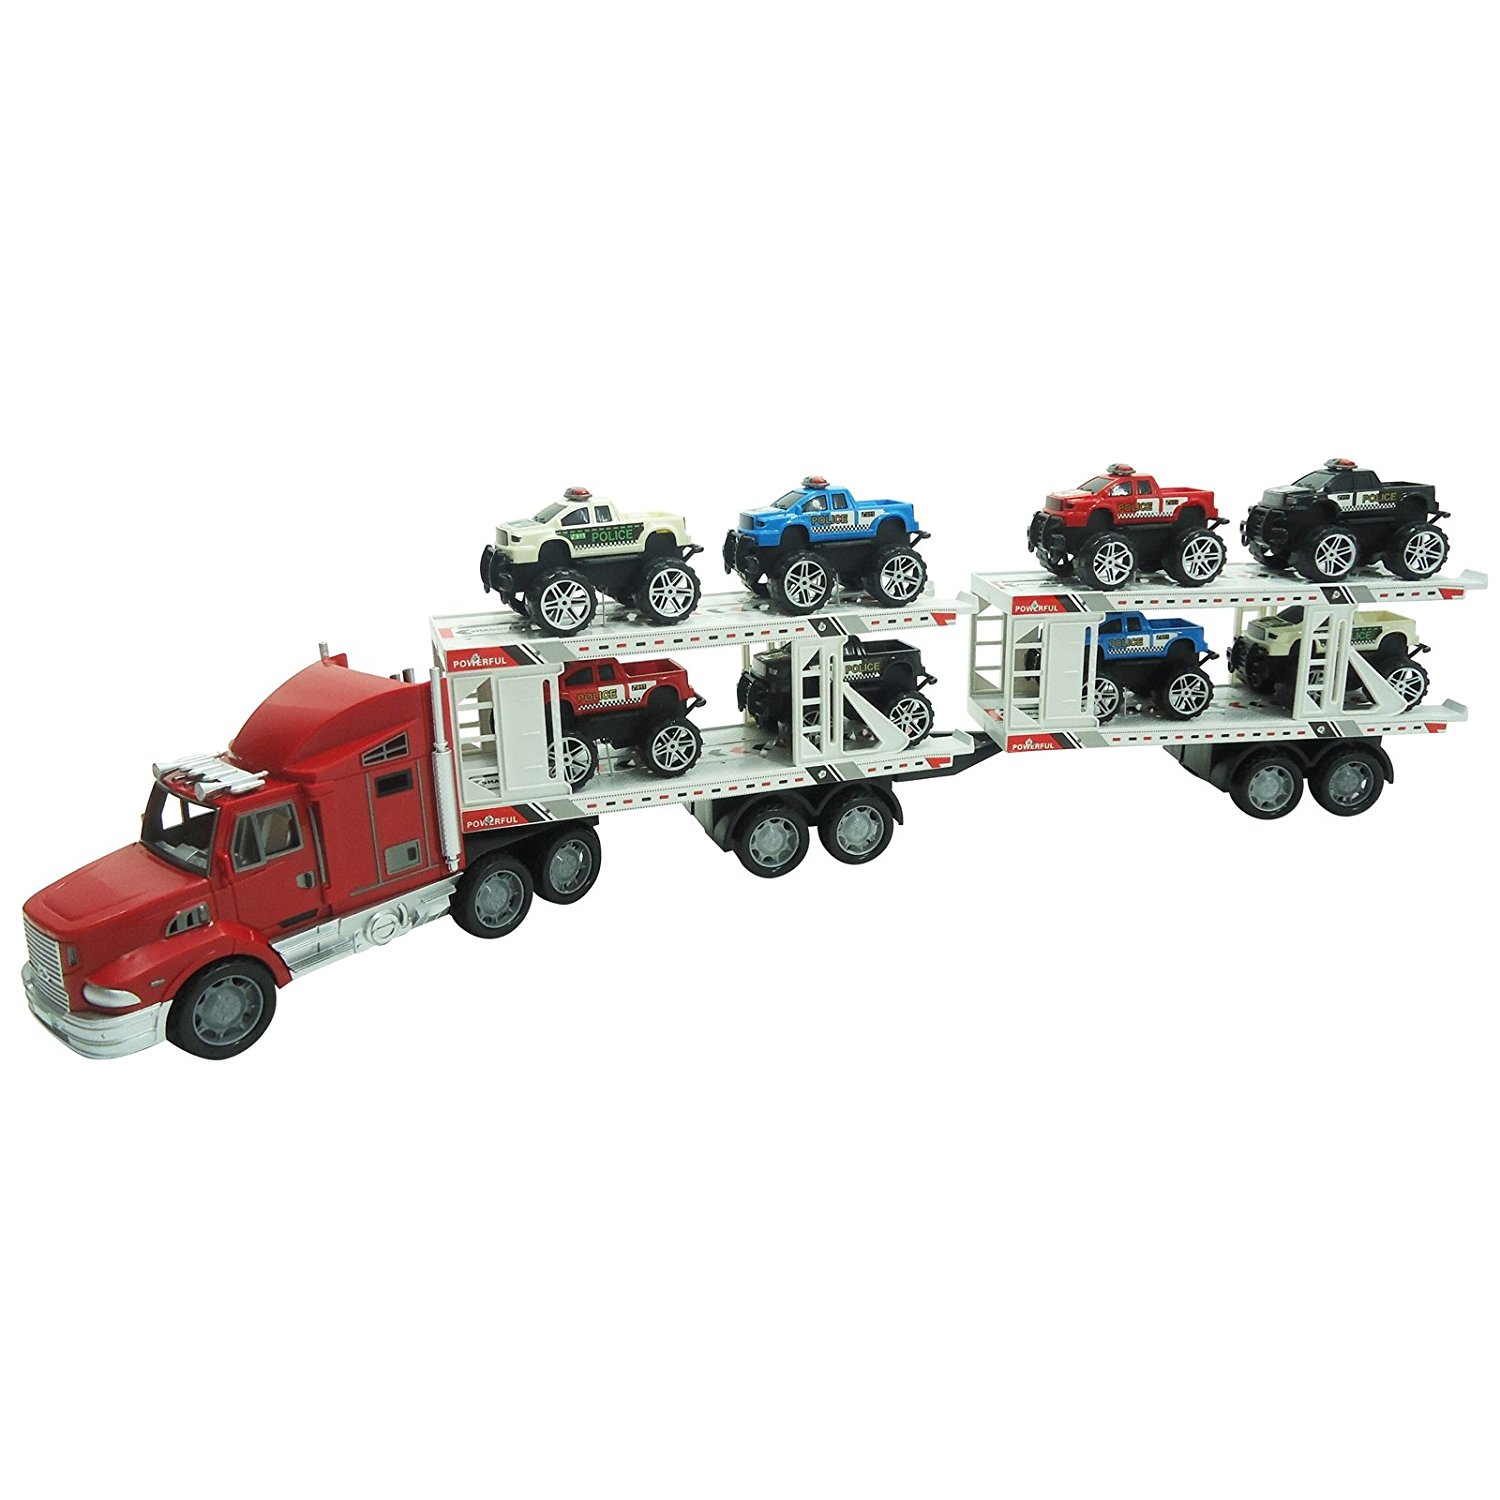 Extreme Semi Truck Trailer Hauling 8 Monster Cars Friction Powered Toy